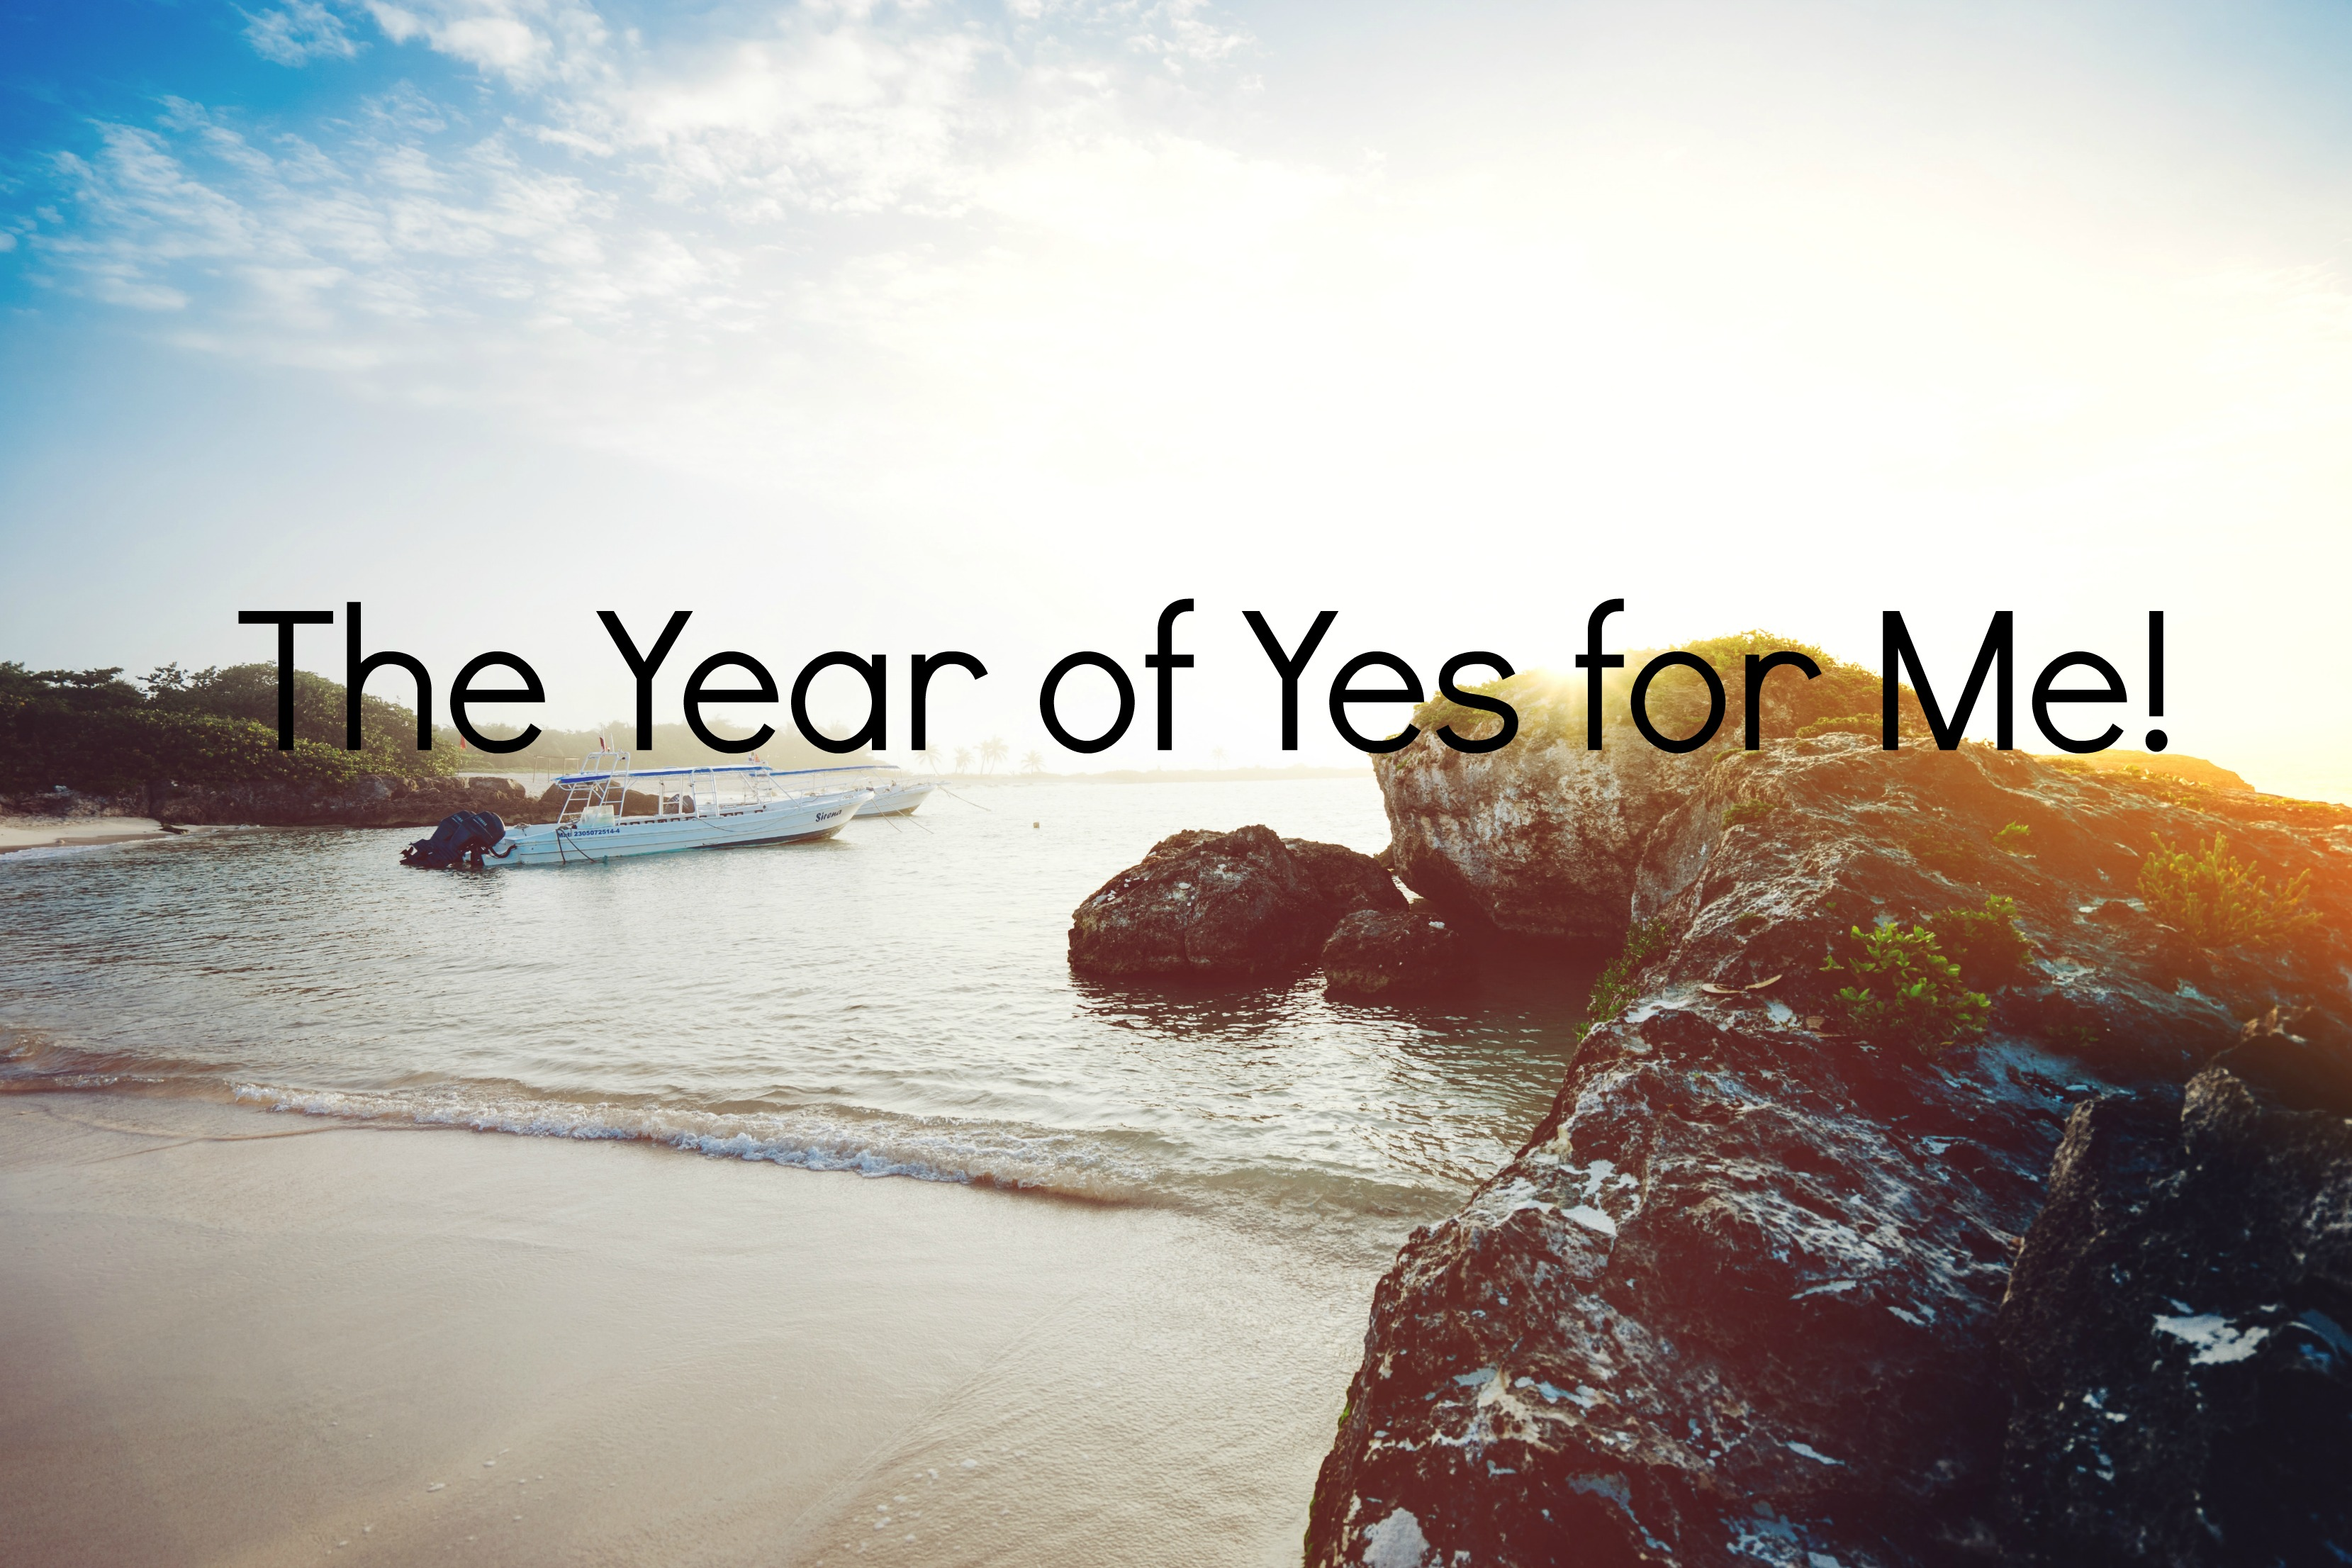 The Year of Yes for Me – How Will You Make it Your Year Too?